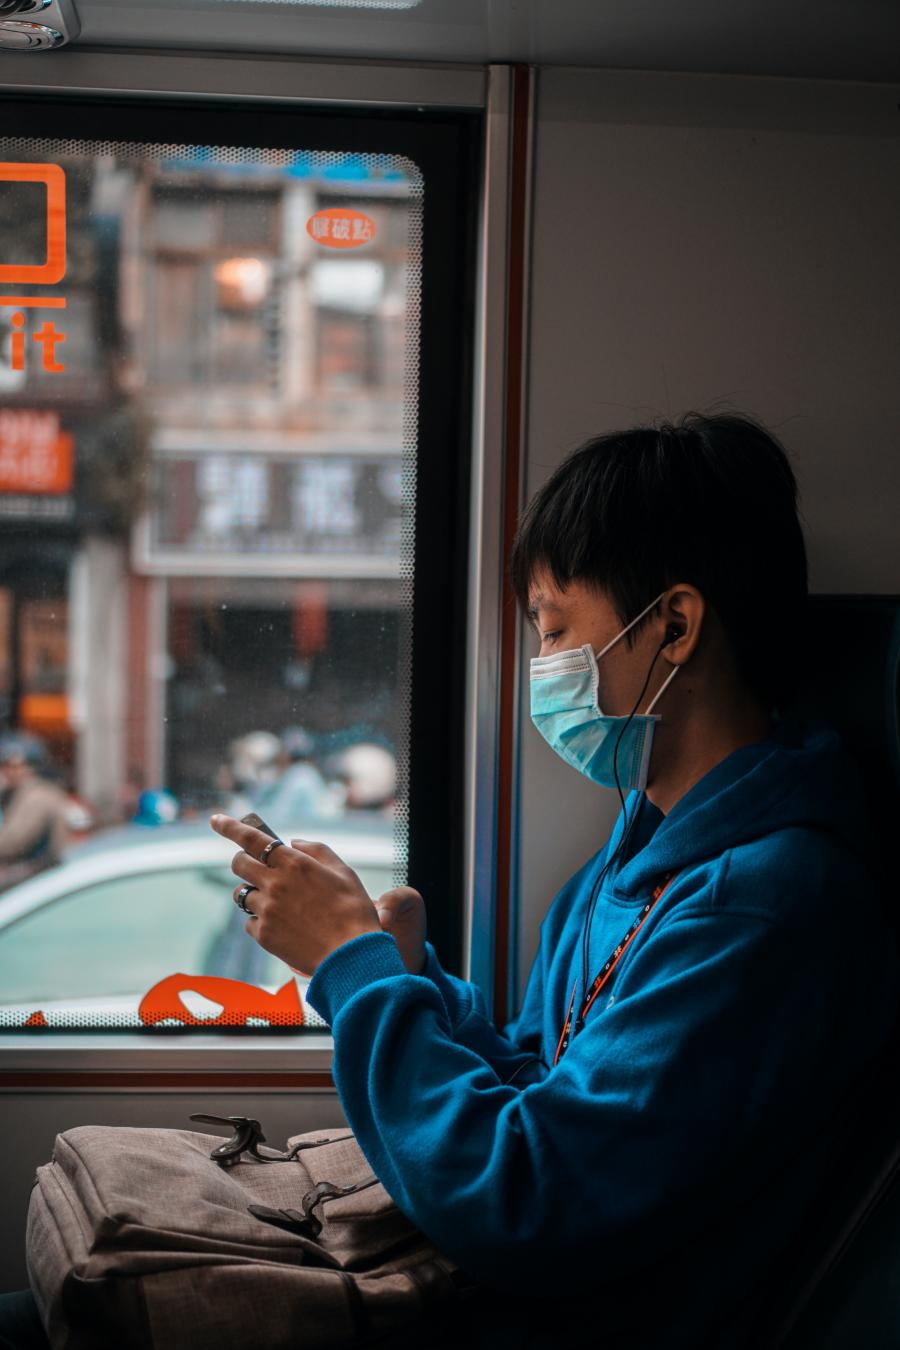 a person wearing a mask uses their phone on a bus